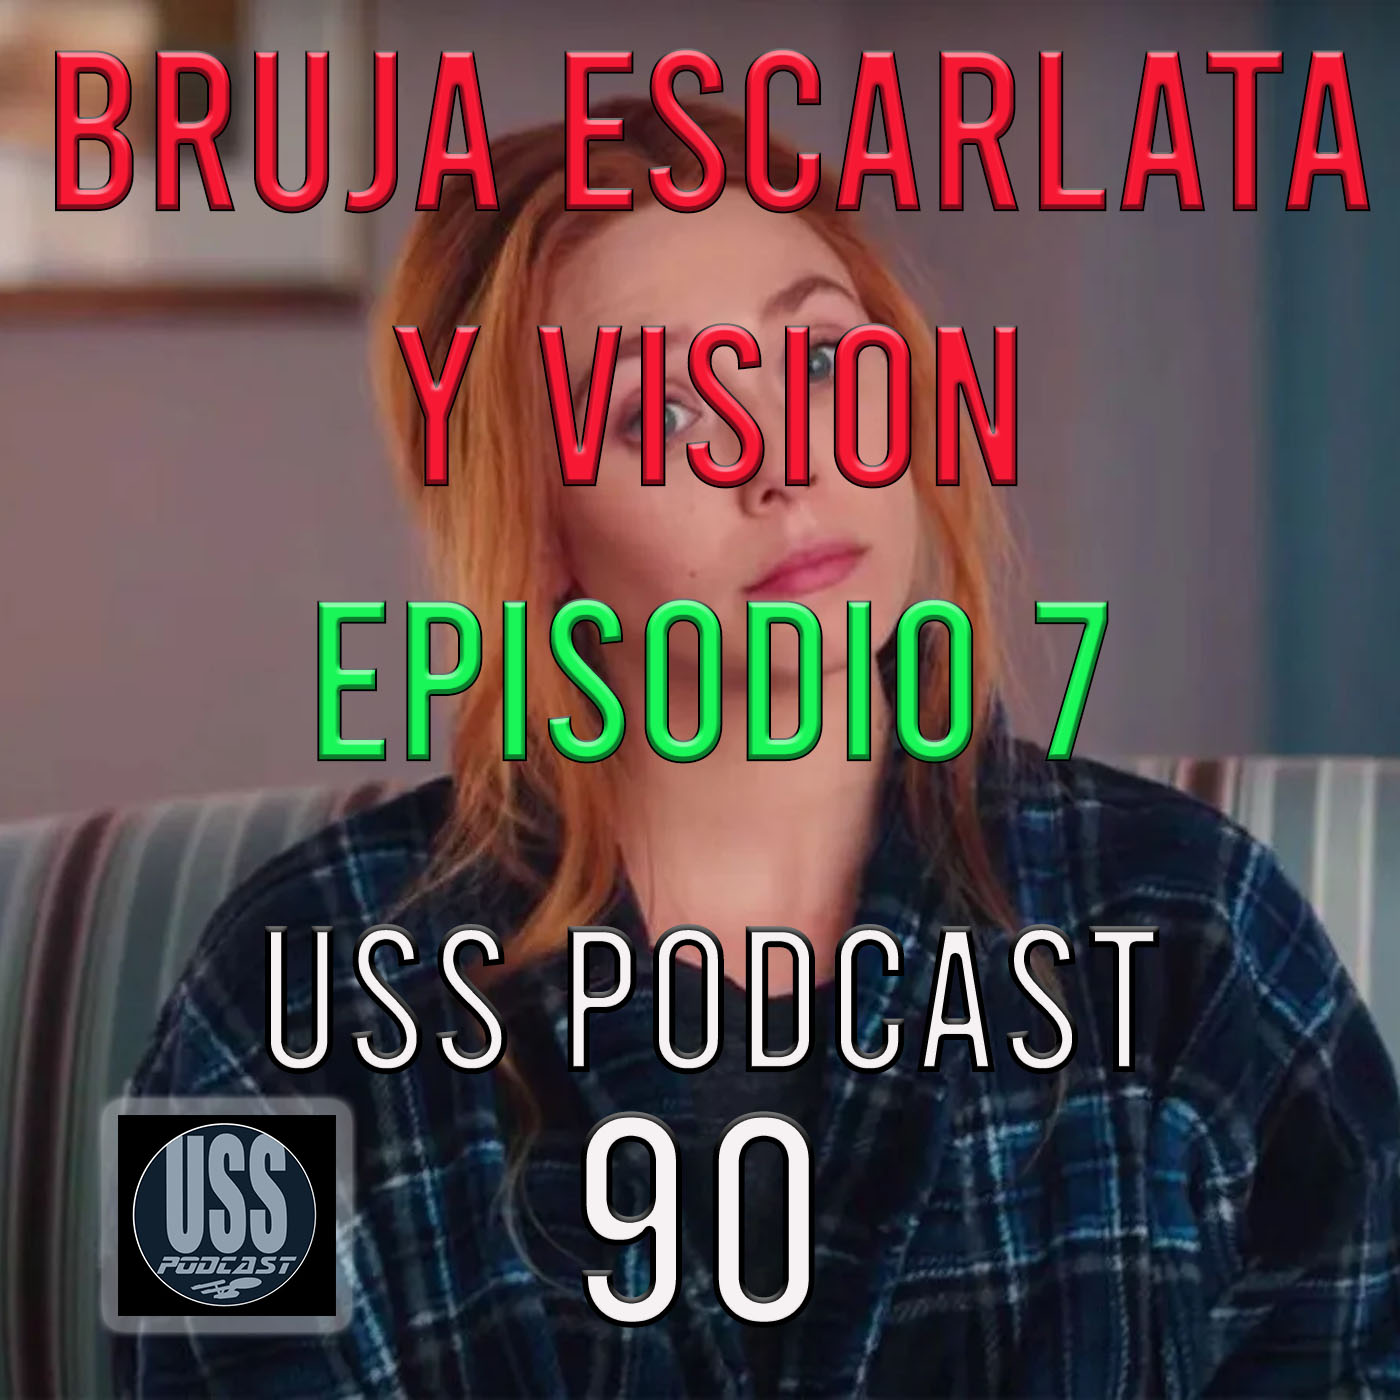 Bruja Escarlata y Vision Episodio 7 USS Podcast 90